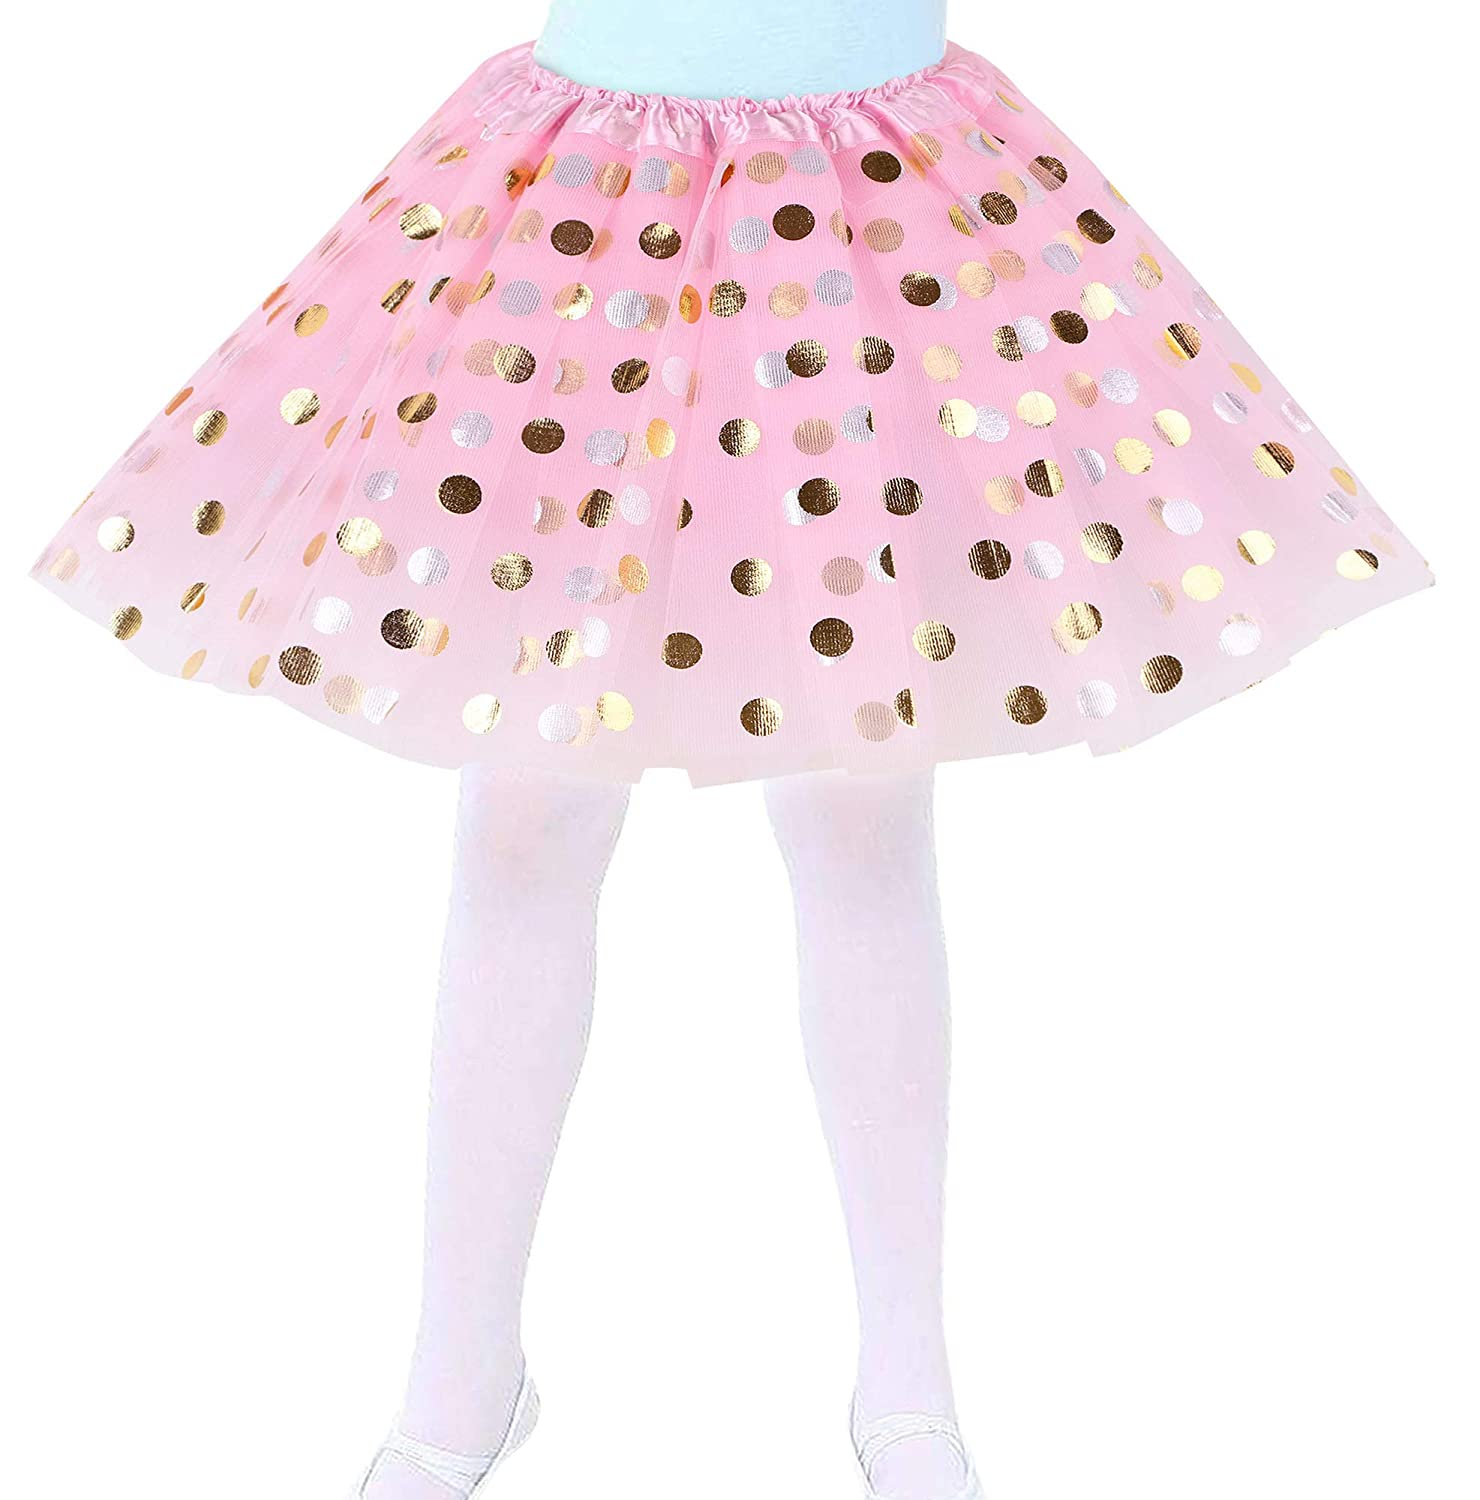 d7bdc8f03a Dress your little princess for ballet class in this sweet dance tutu. The  cute ruffled waistband is elastic and has no closures which makes it easy  for your ...